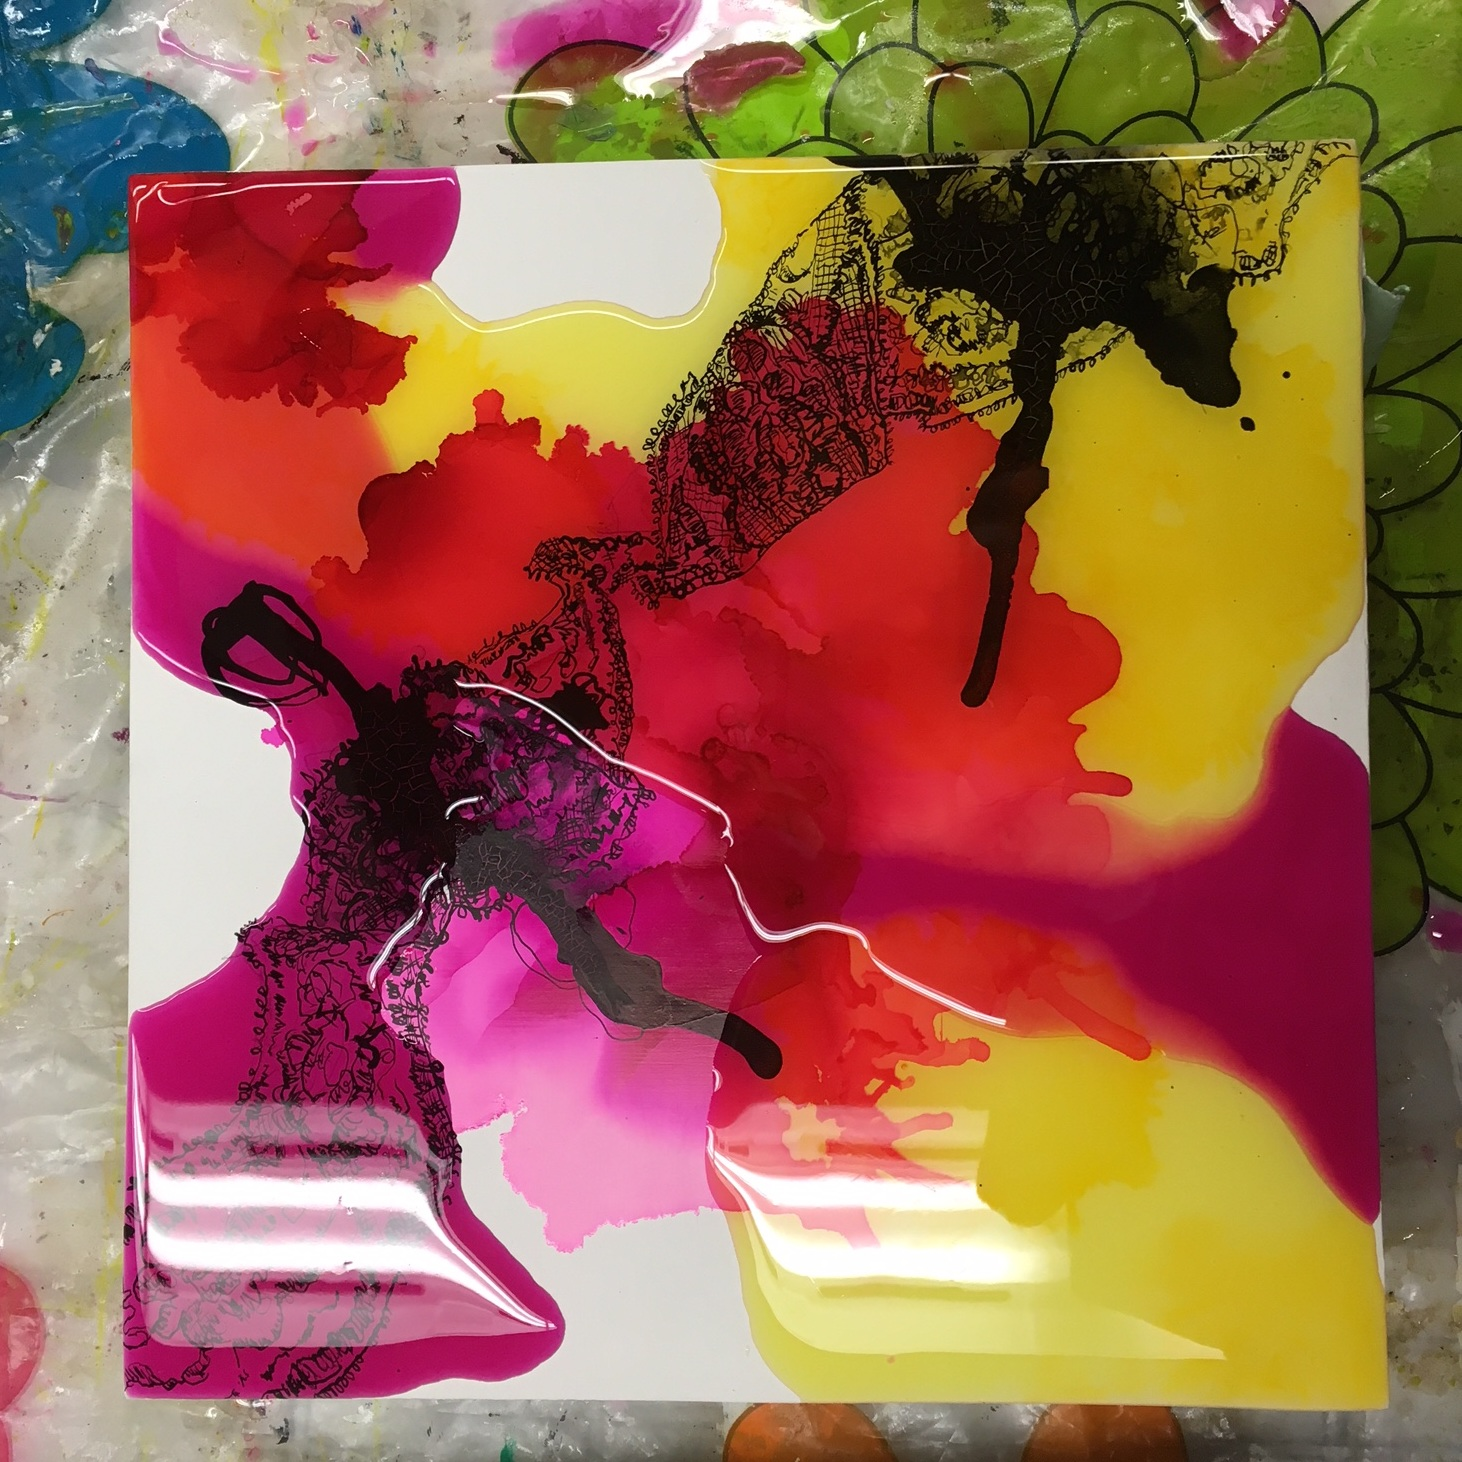 Juicy, candy layers! Working with resin always makes me hungry.